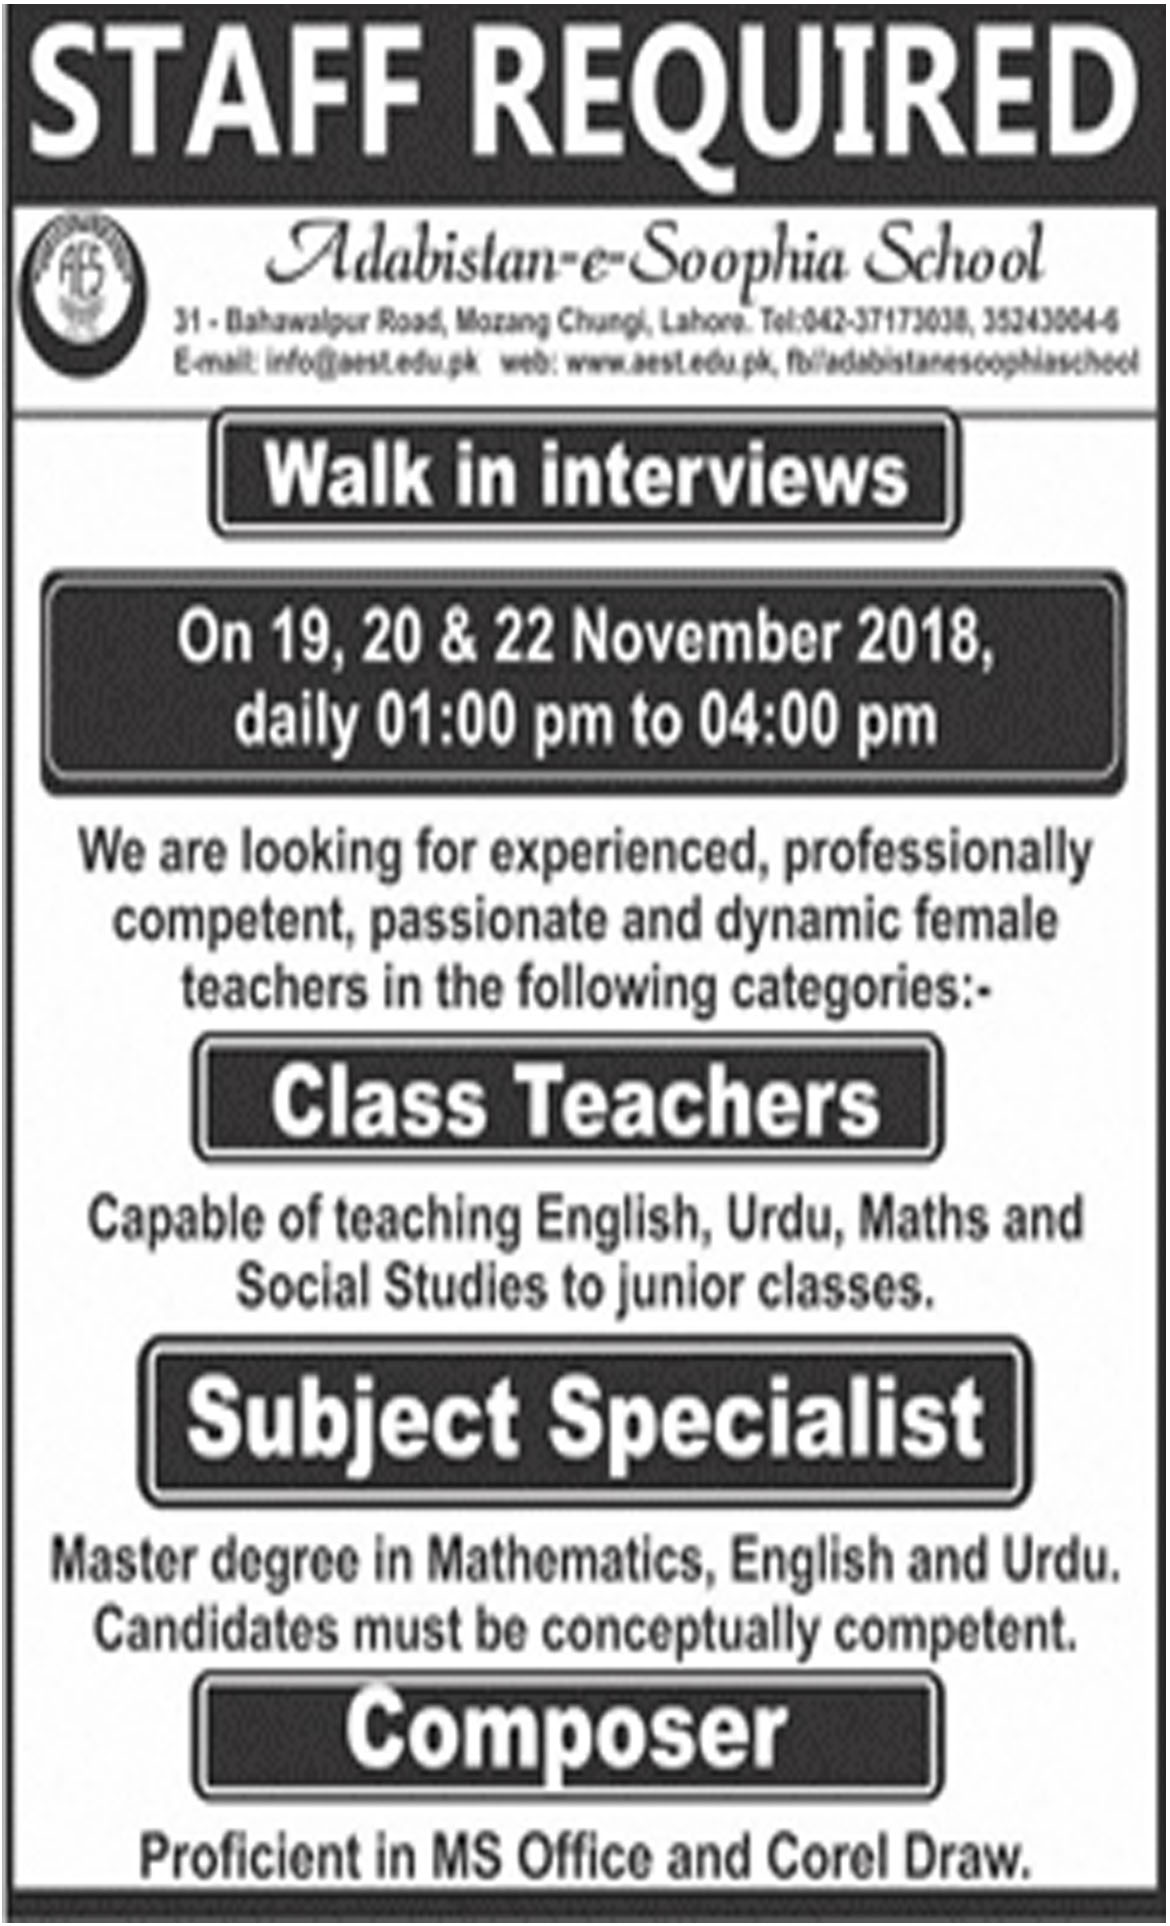 Jobs In Adabistan E Soophia School 19 Nov 2018